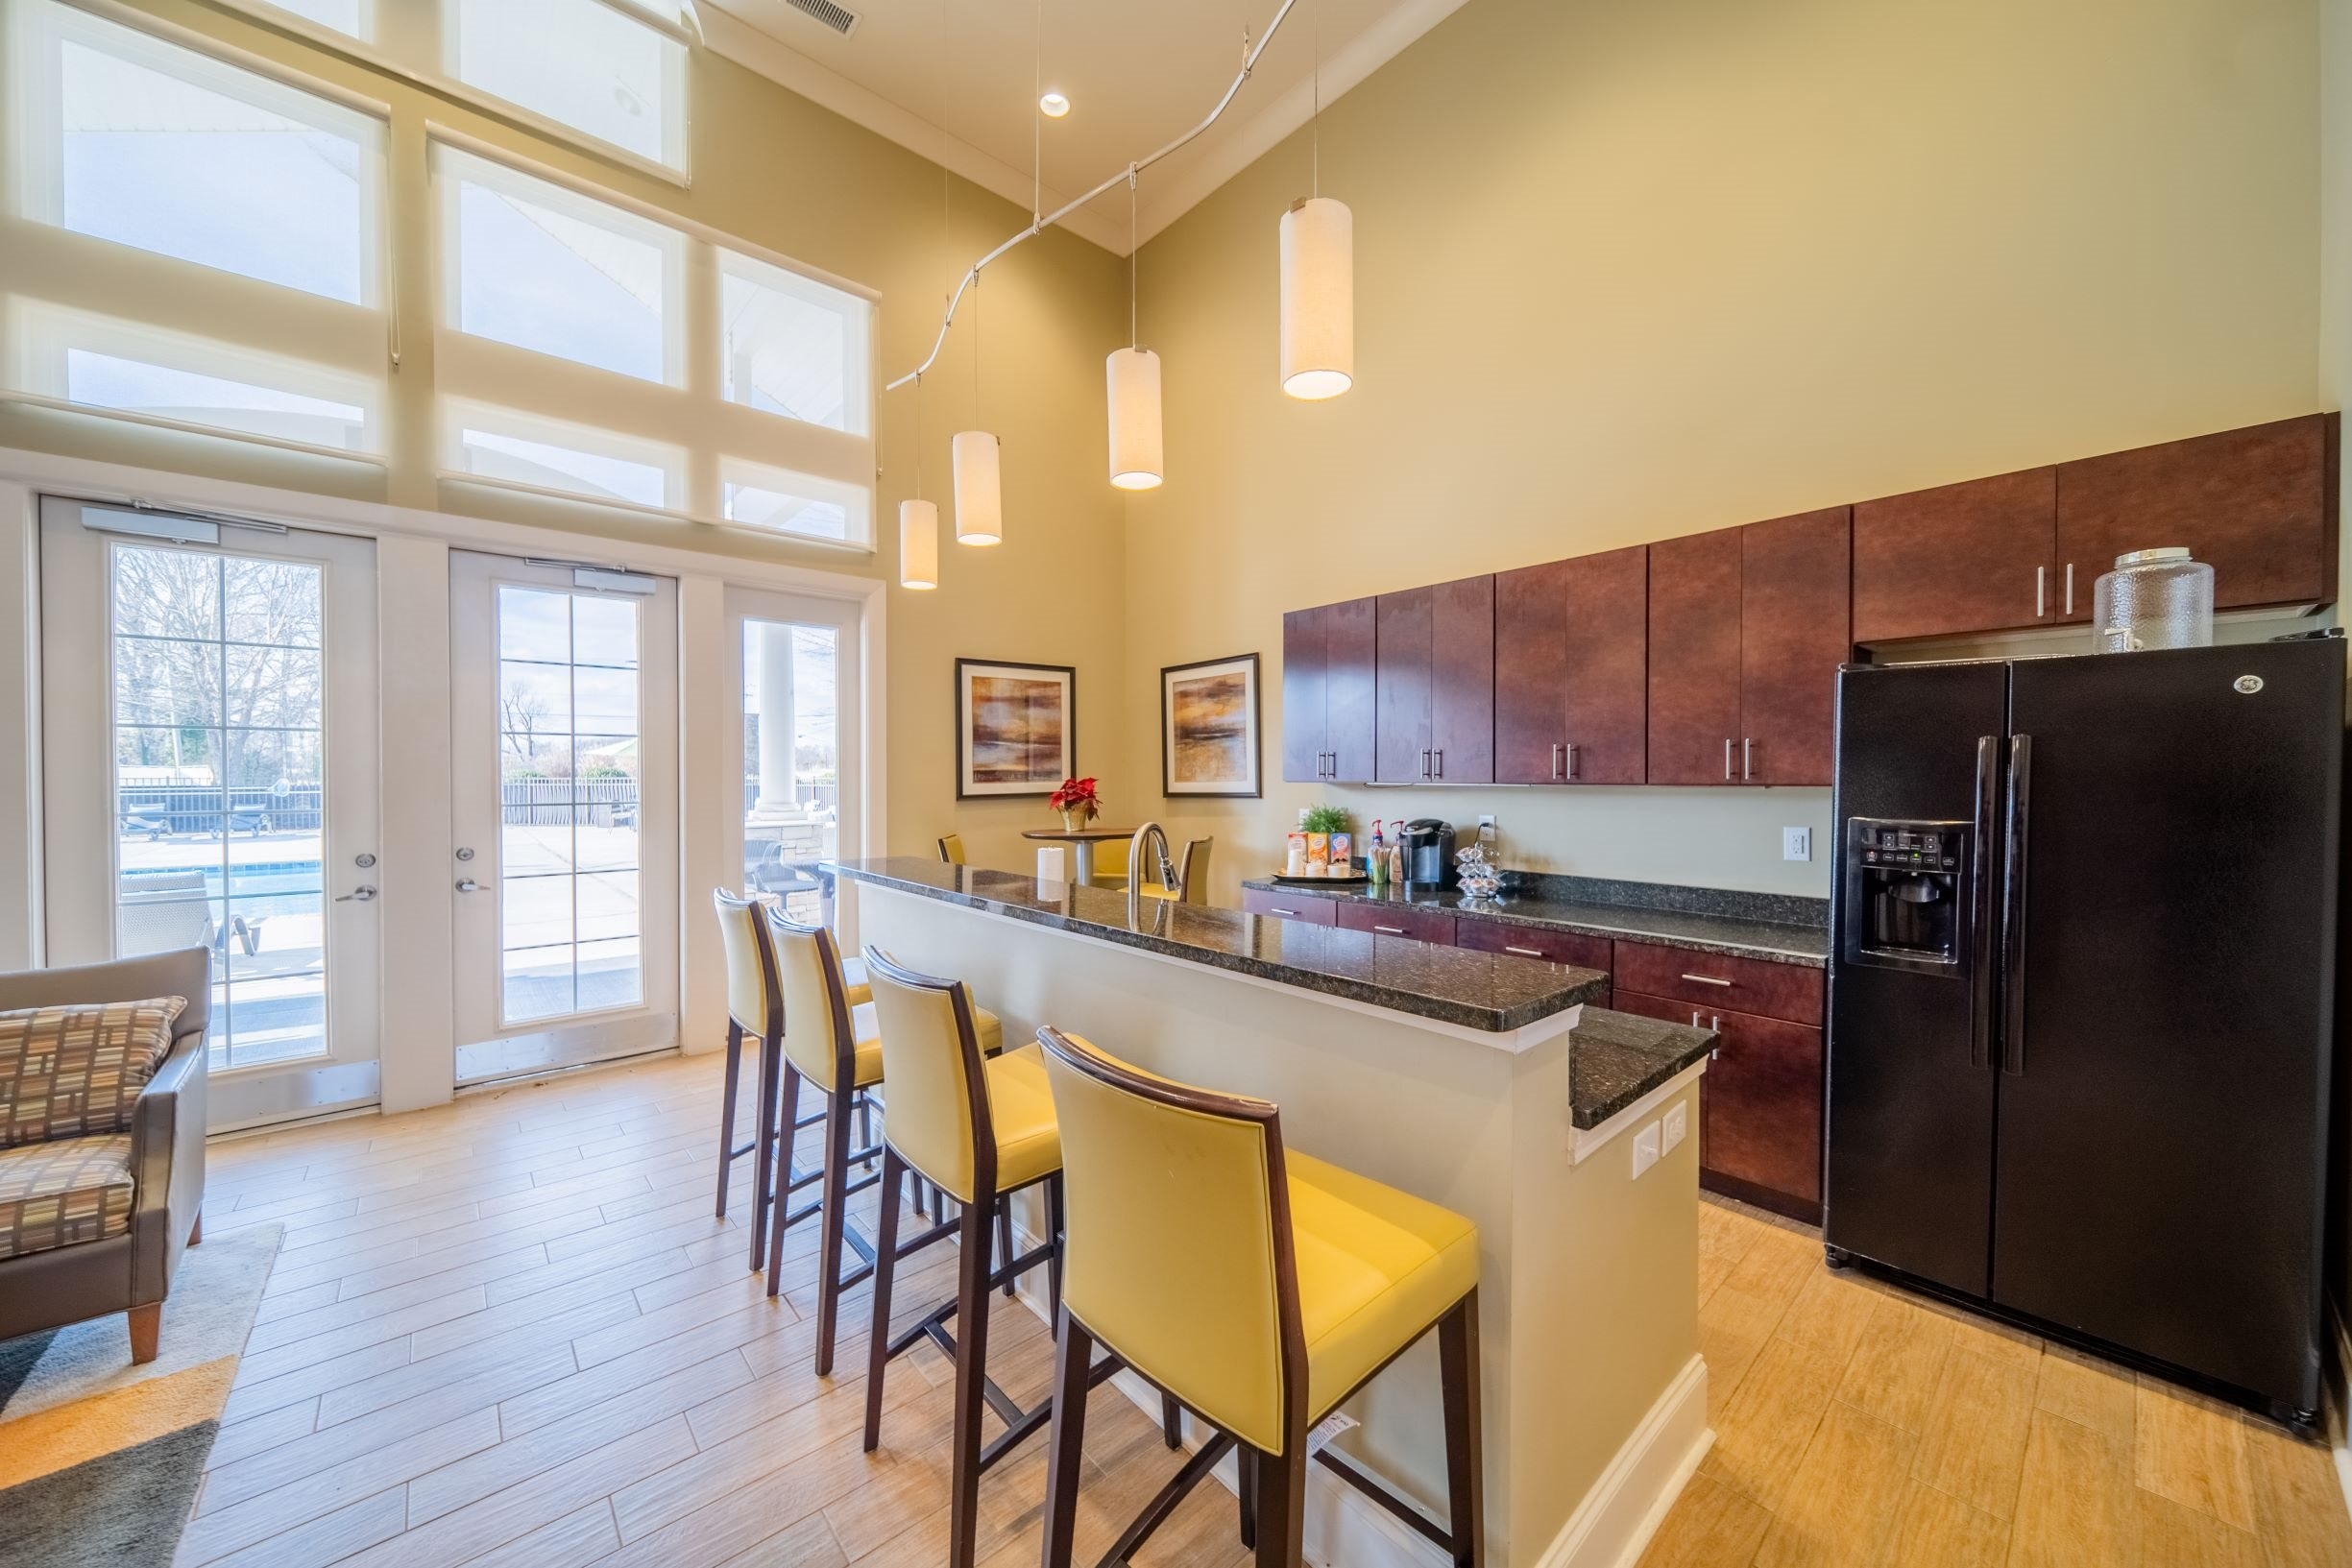 Clubhouse kitchen at Piedmont Place apartments in Greensboro, NC